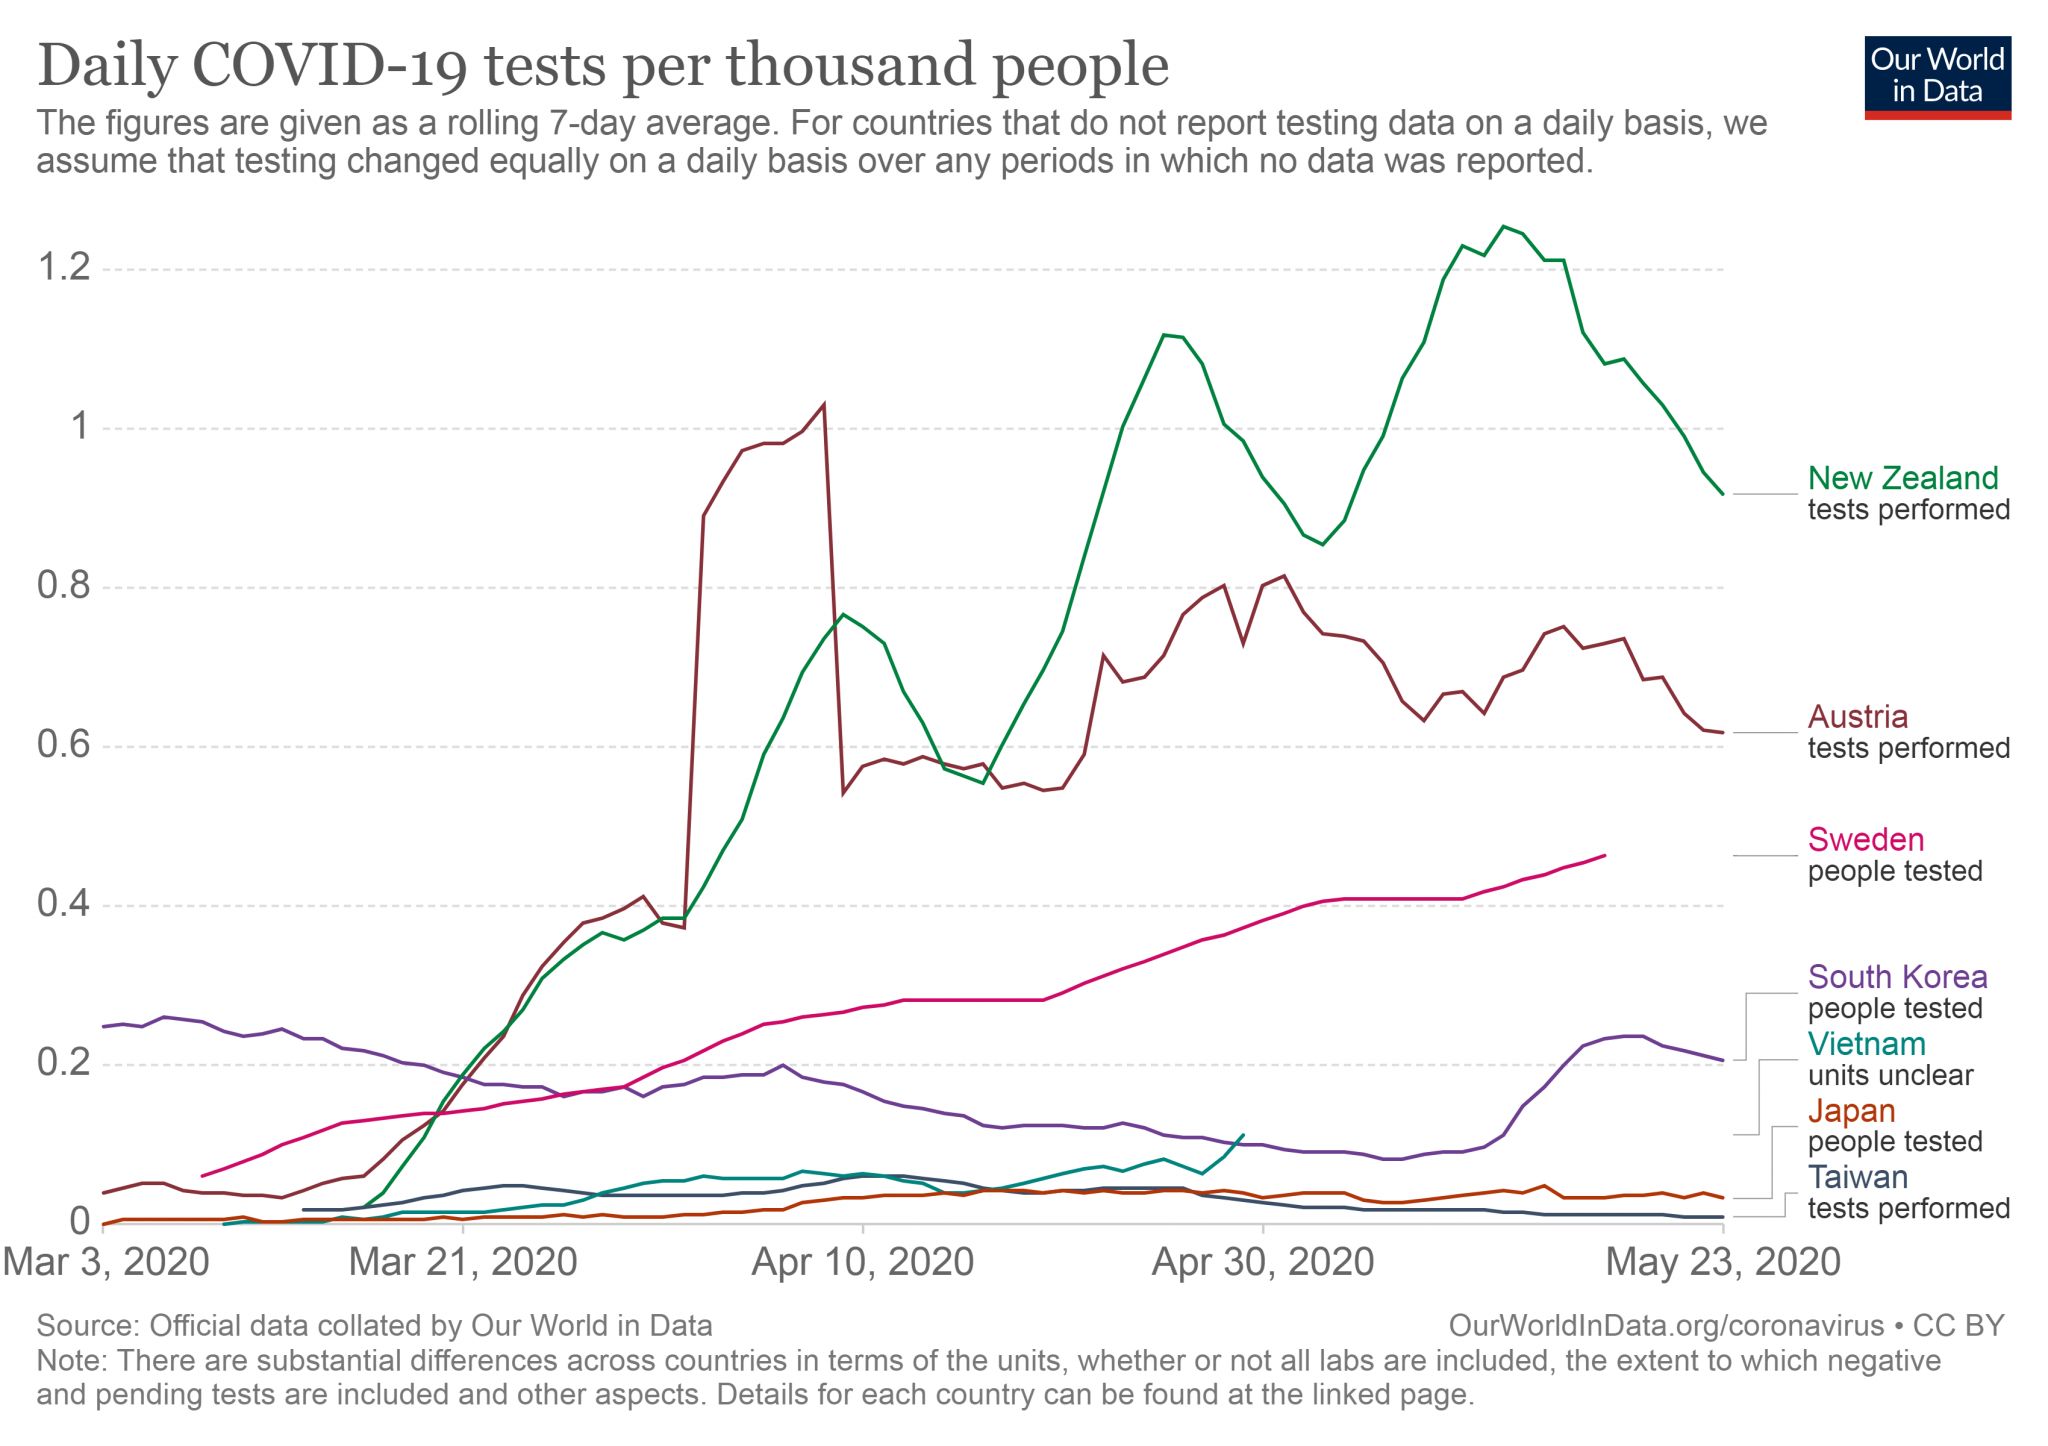 NZ daily-tests-per-thousand-people-smoothed-7-day.png